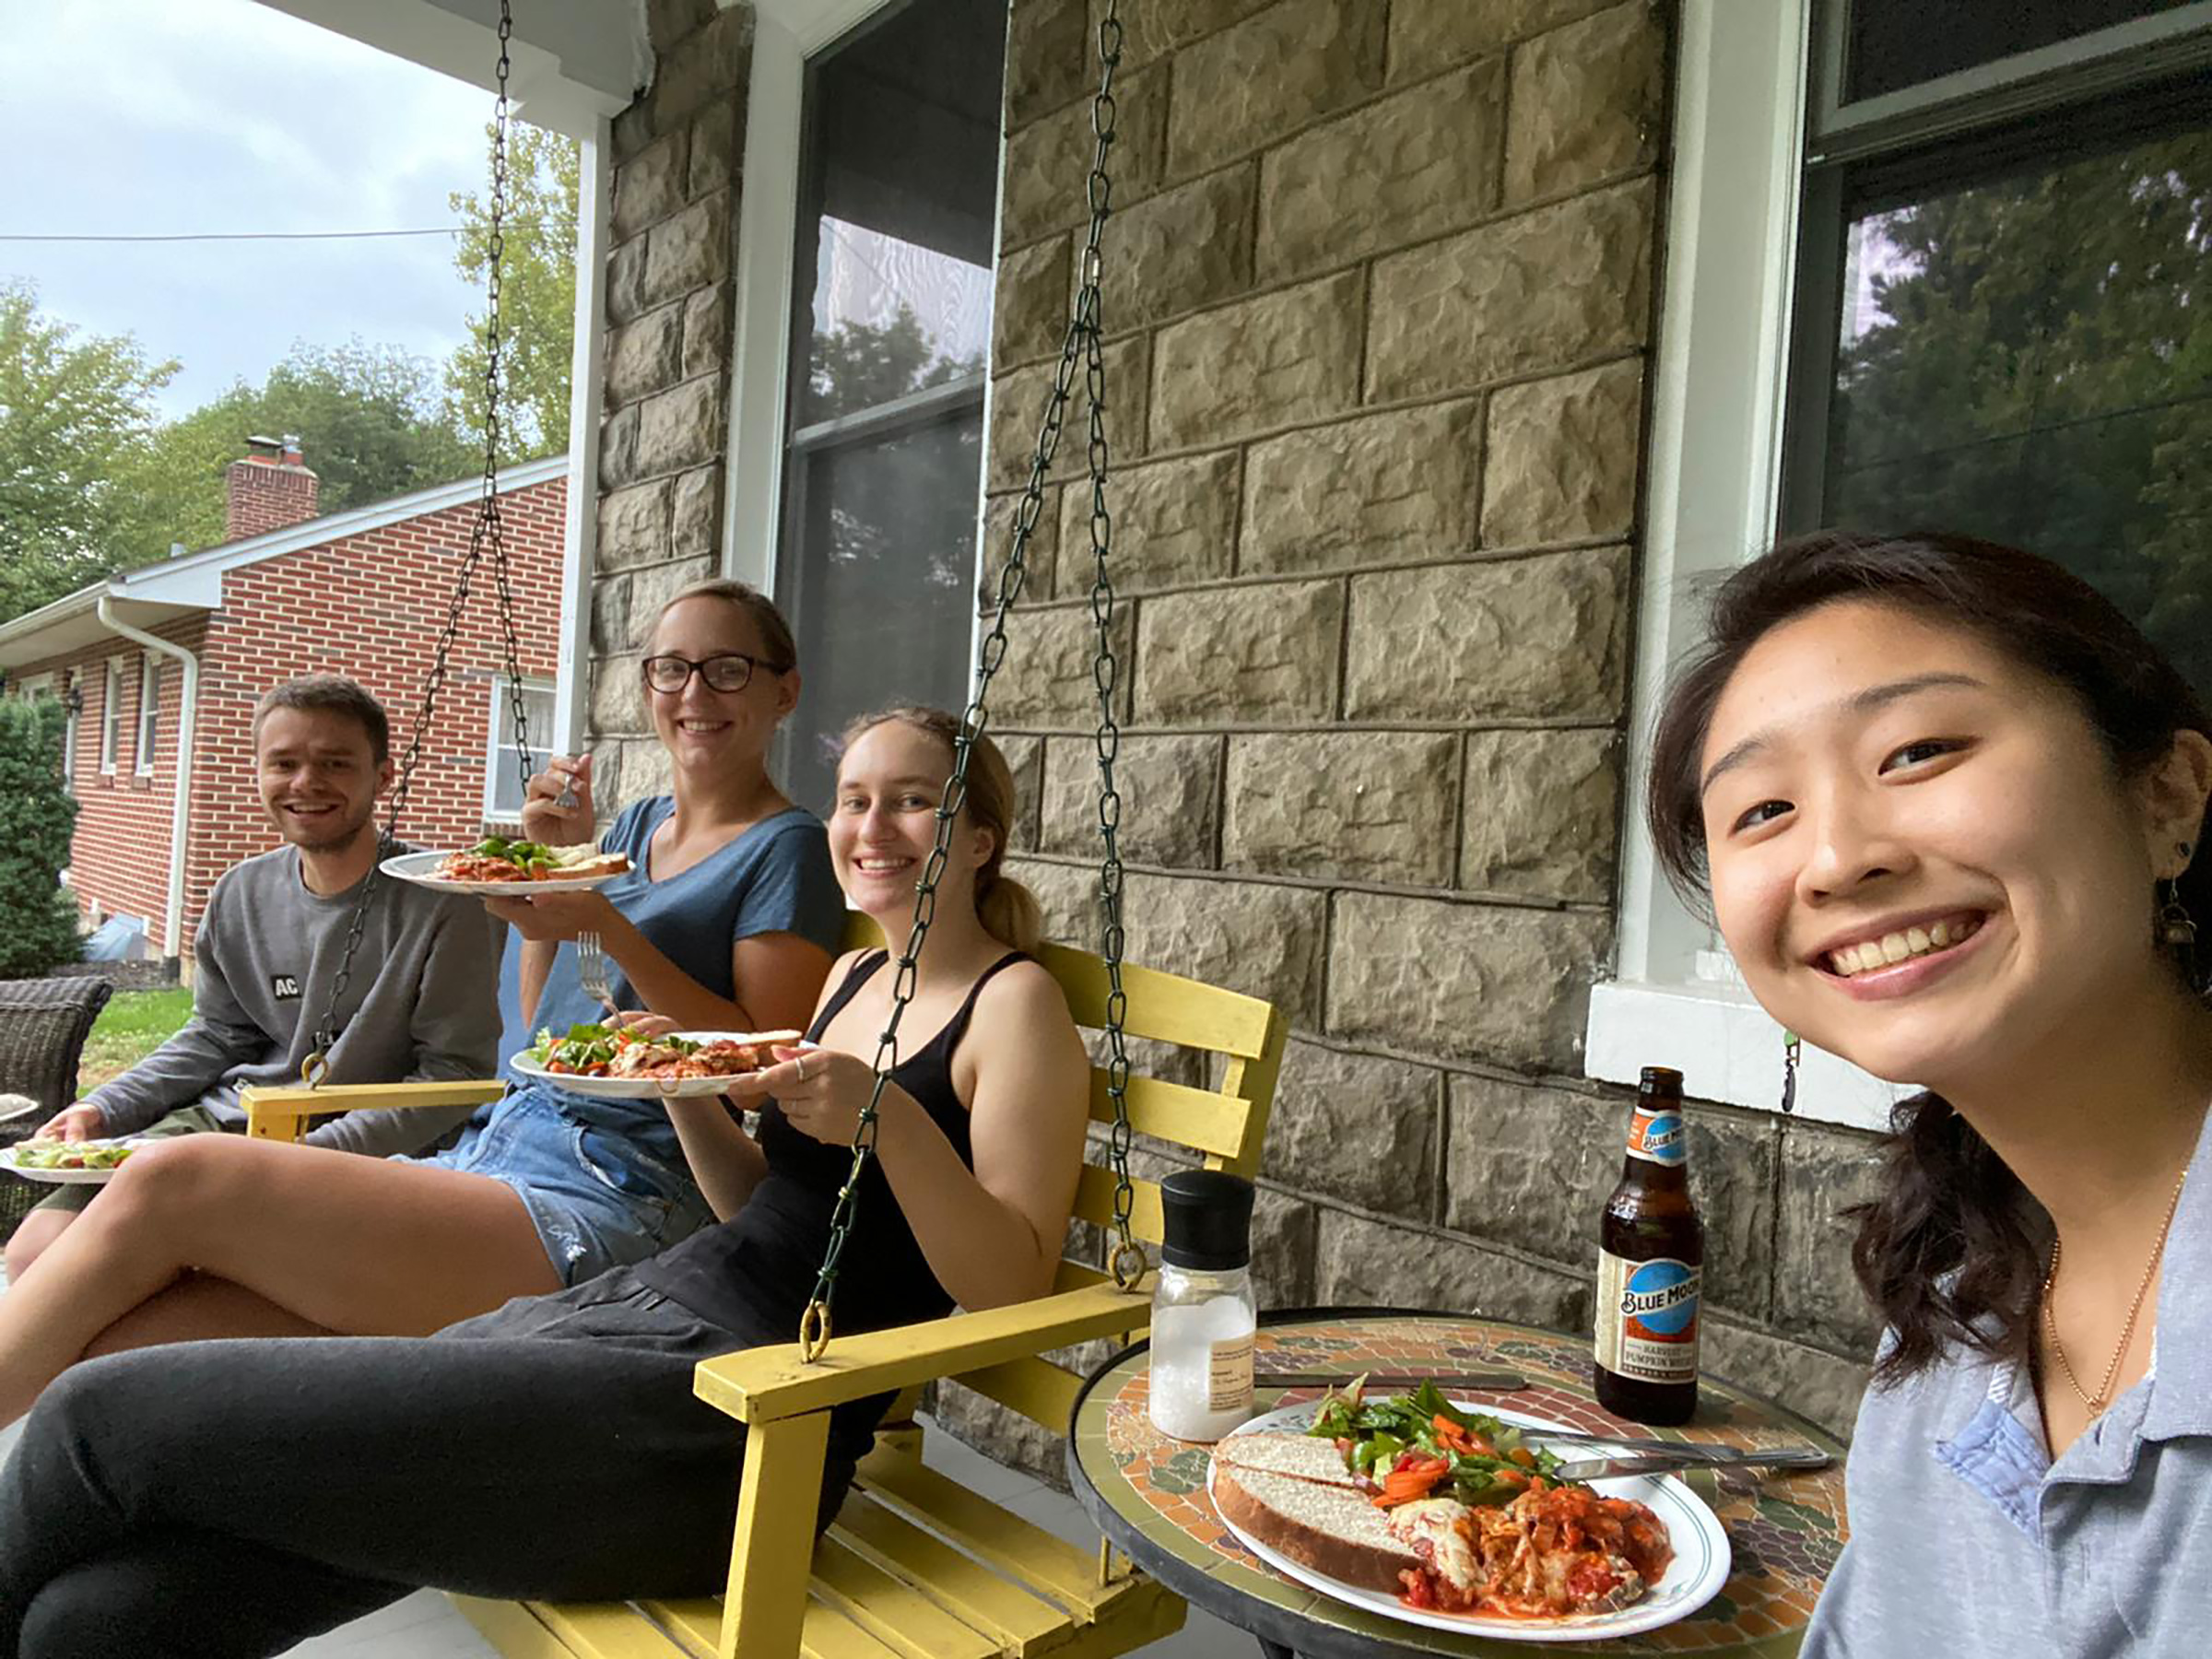 The author (right) having dinner with her housemates on the porch in Carlisle, Penn.